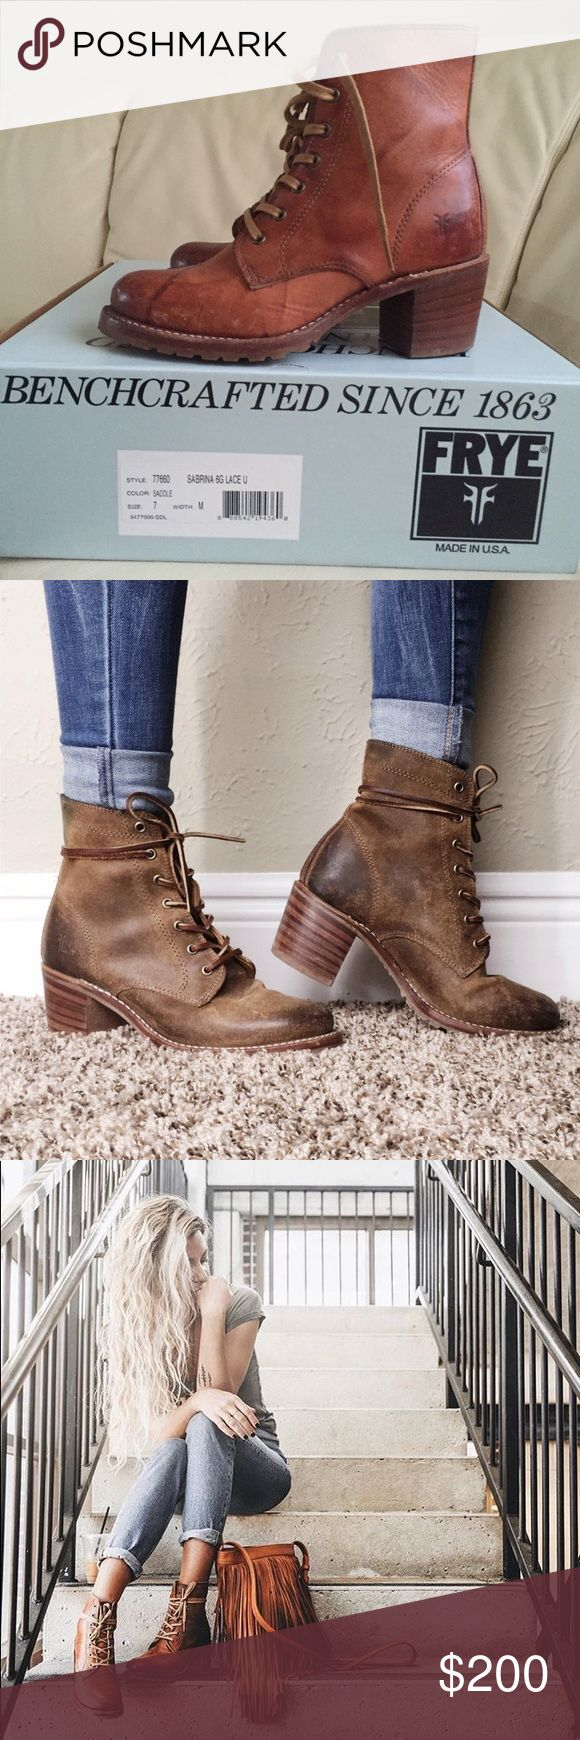 Frye Sabrina 6g lace up saddle heeled combat boot ENTIRE SHOP BOGO 50% OFF OR BUY 2 GET 1 FREE🌈  These are SOLD OUT online! So comfy.Worn a few times. A cobbler put in a heel protector so the heel doesn't wear down!A couple scuffs as shown in pics. Super sad to sell but they're too big for me. As you can see in Frye's photos, the leather is meant to look vintage. What sets the Sabrina apart from other work boots is hand burnishing and leather. The result is a patina that glows and gets even…